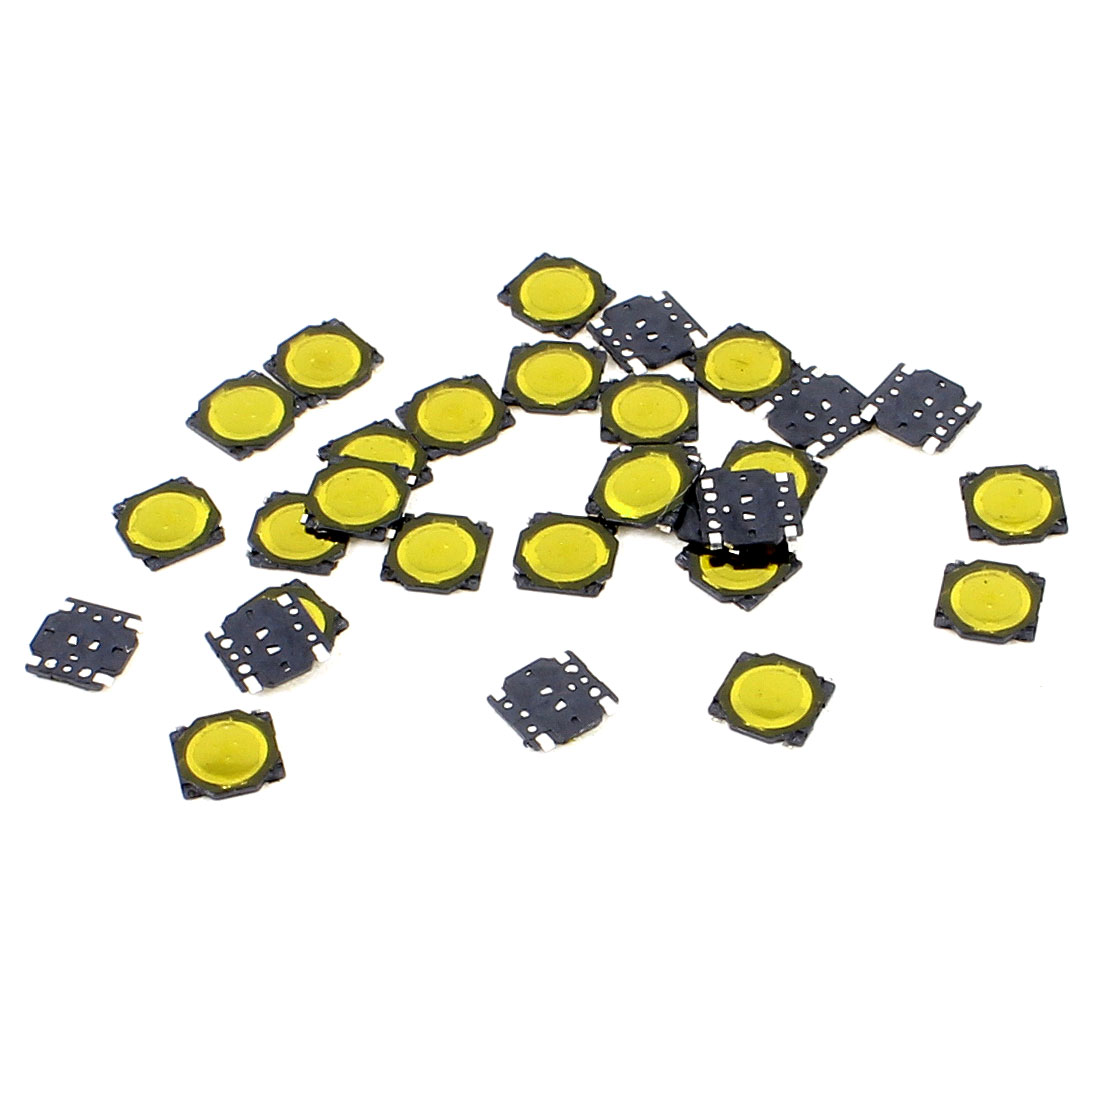 30 Pcs 3.7x3.7x0.35mm 4 Pins Momentary Push Button SMD SMT Tactile Tact Switch